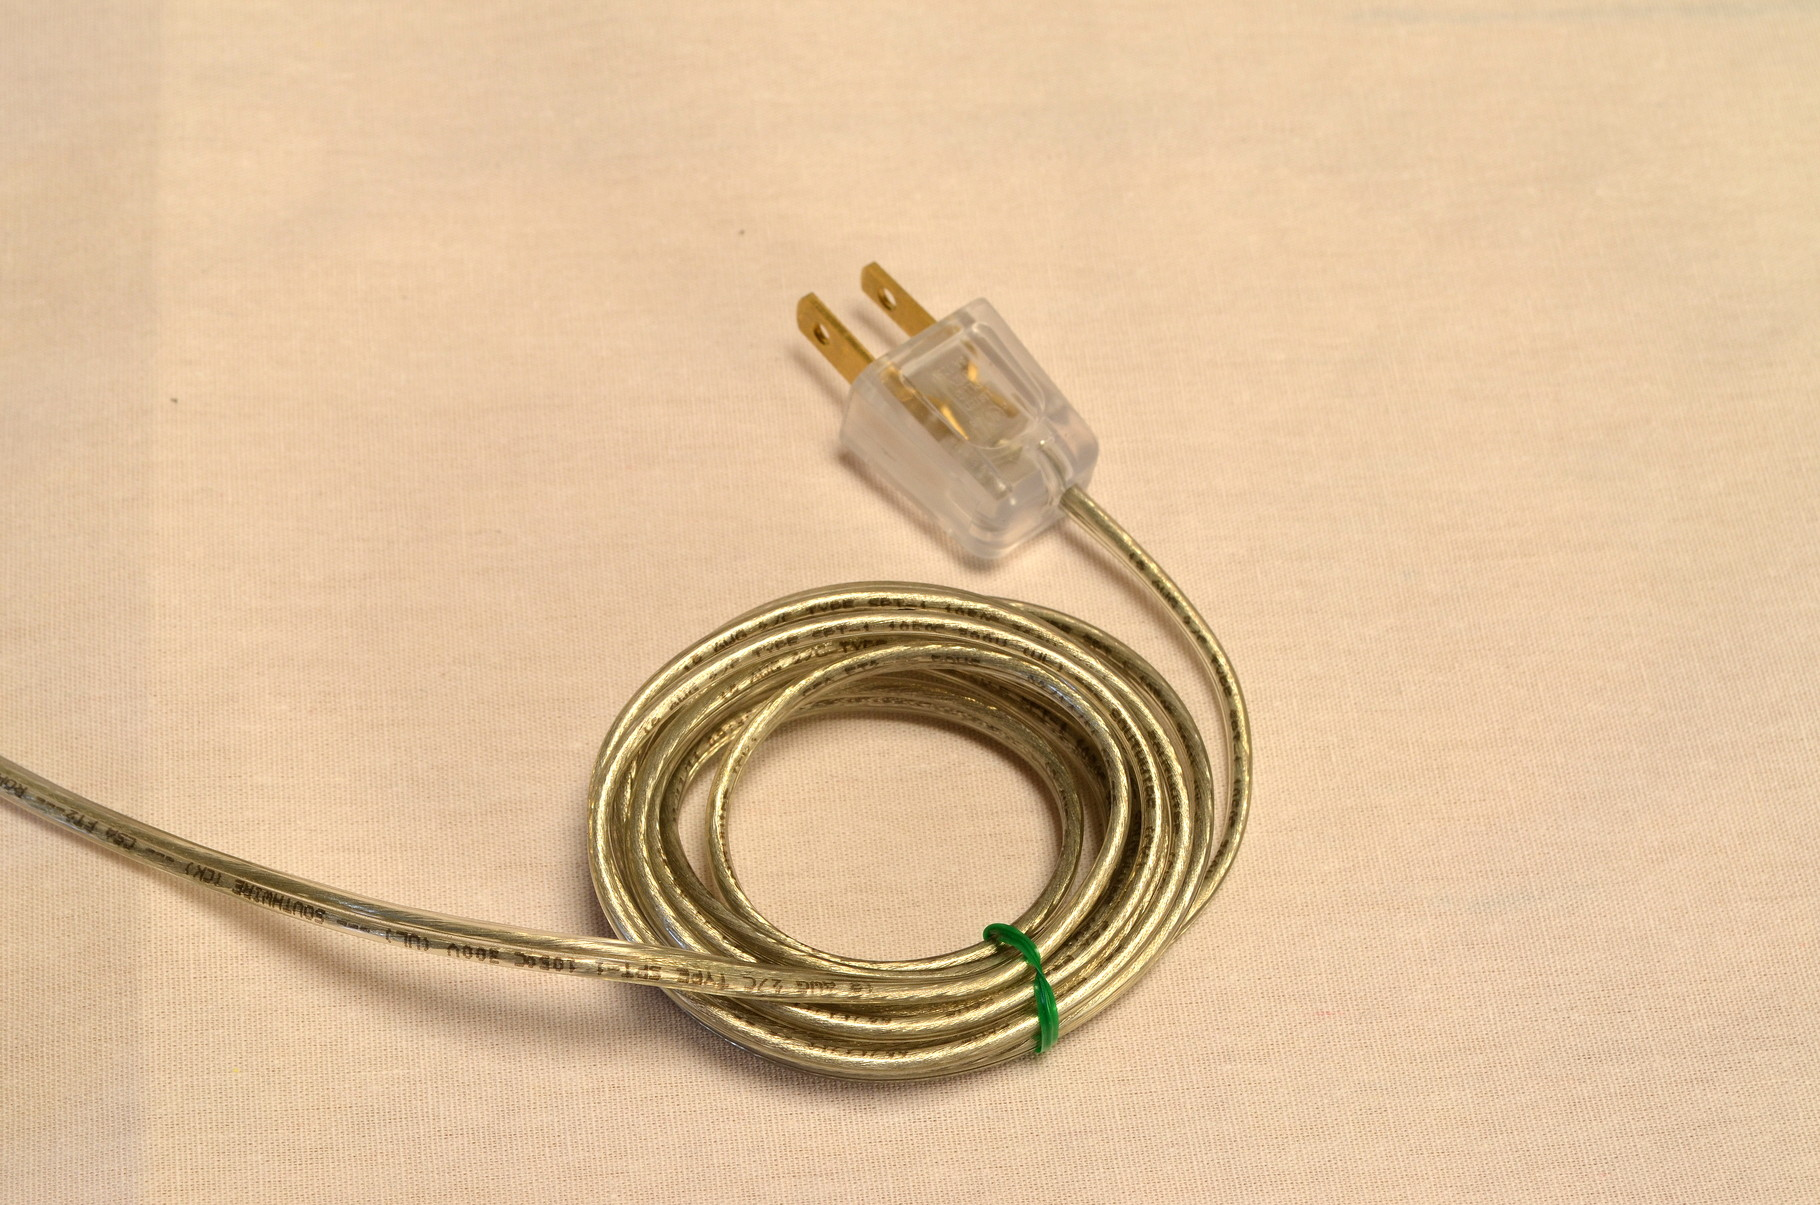 SIM's 8' clear industrial cord with clear contemporary plug.